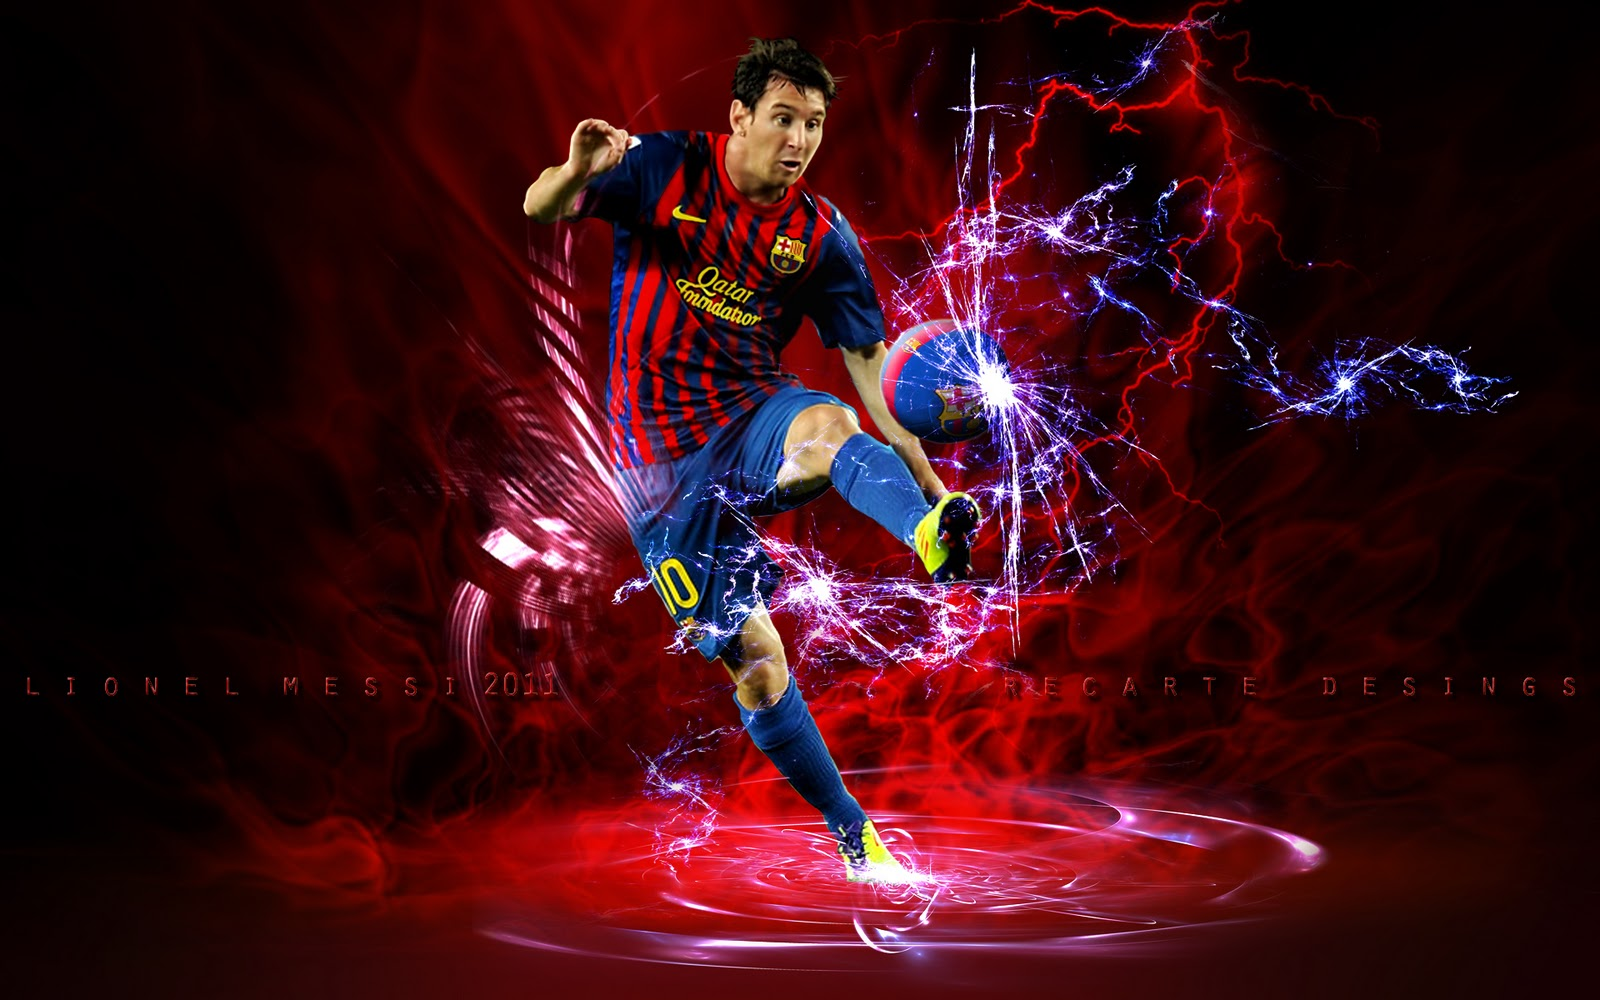 Sports Players Lionel Messi HD Wallpapers 2012 1600x1000